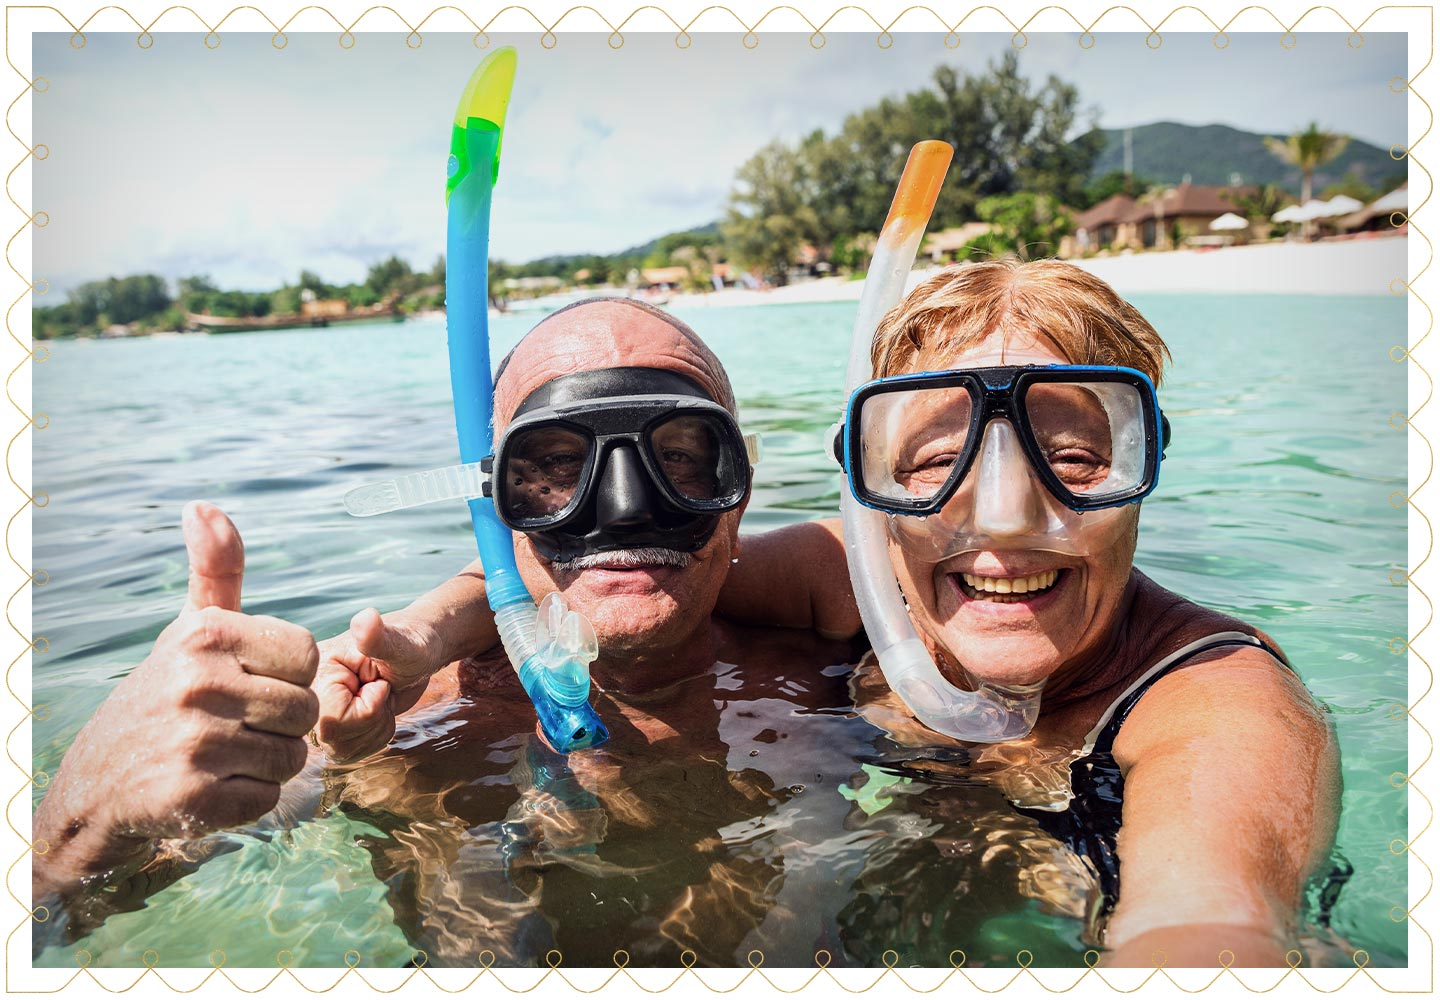 happy middle-aged couple with snorkels and goggles on taking a selfie in the water at a tropical vacation place